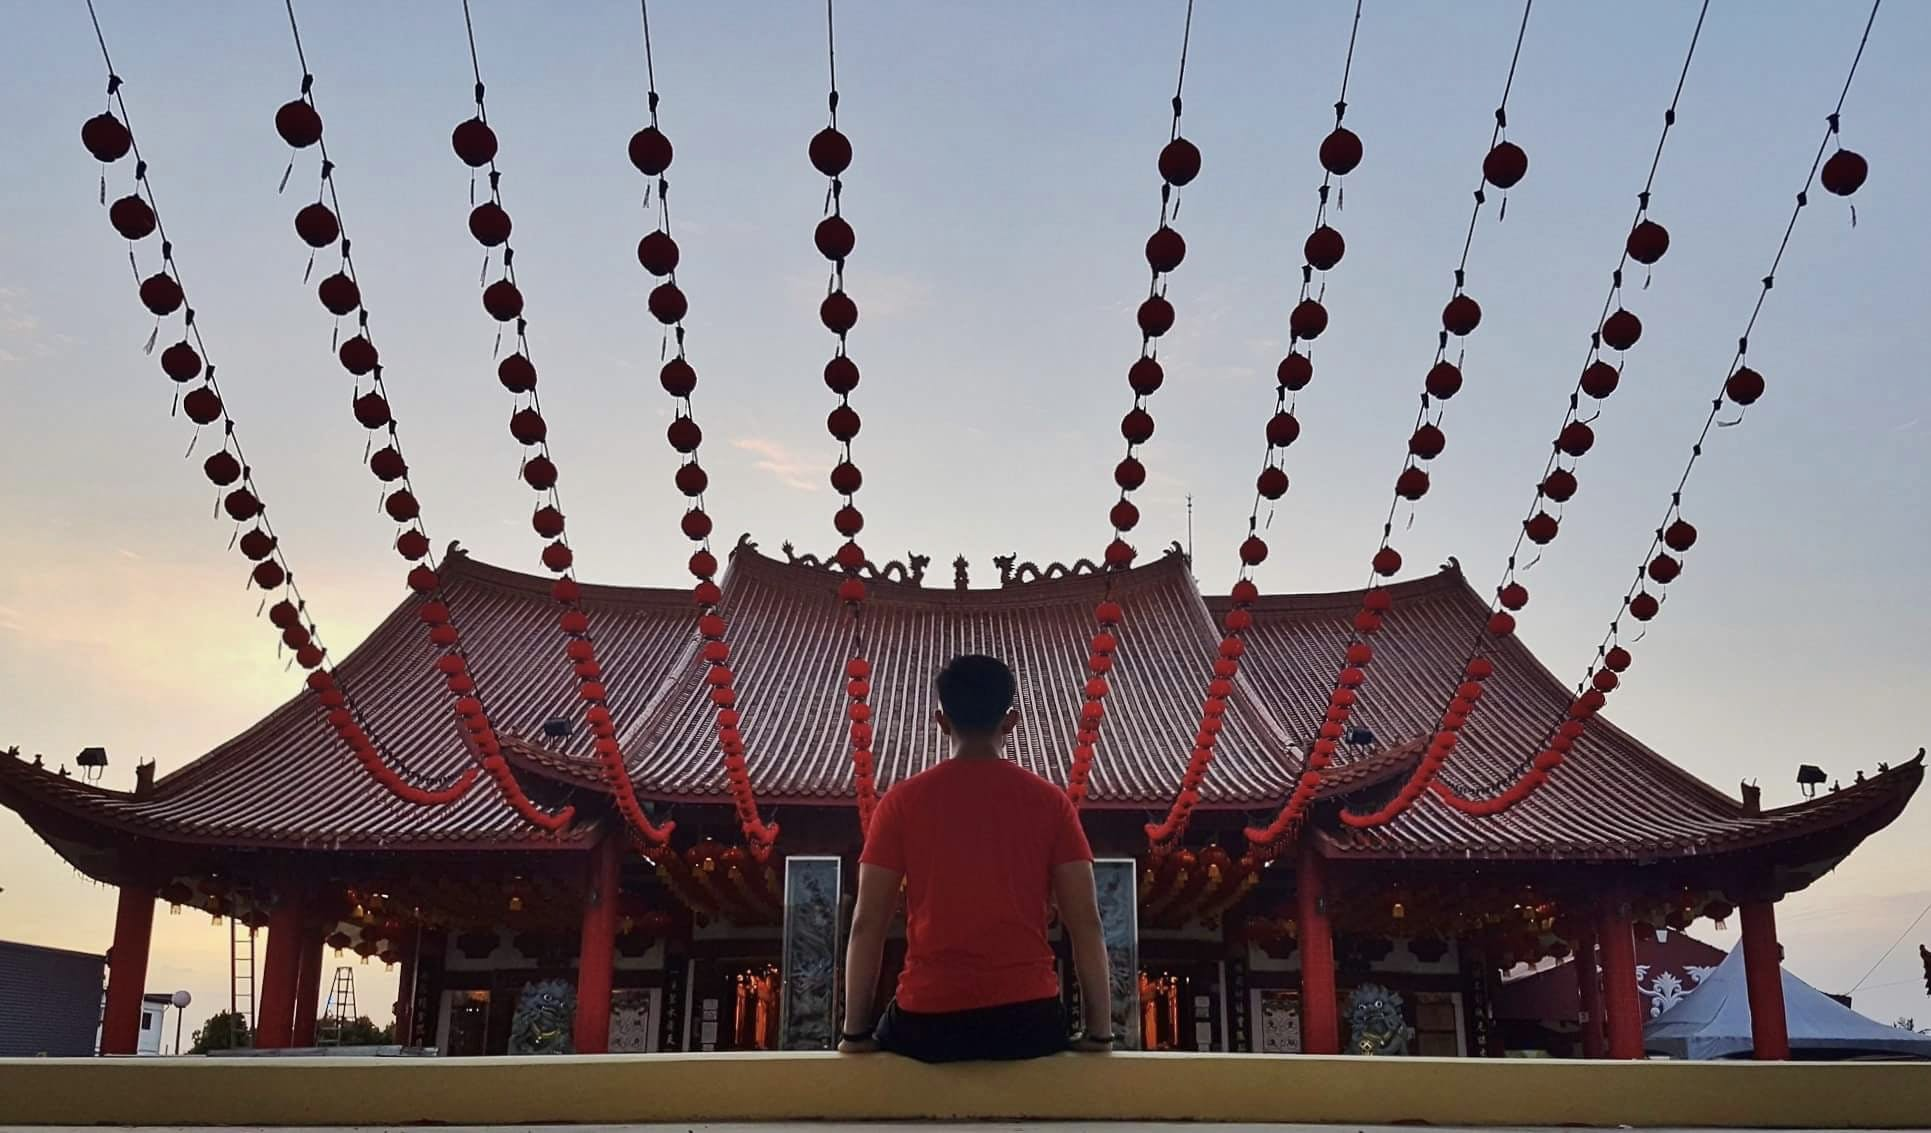 Man Sitting on Yellow Concrete Pavement Infront of Red Pagoda